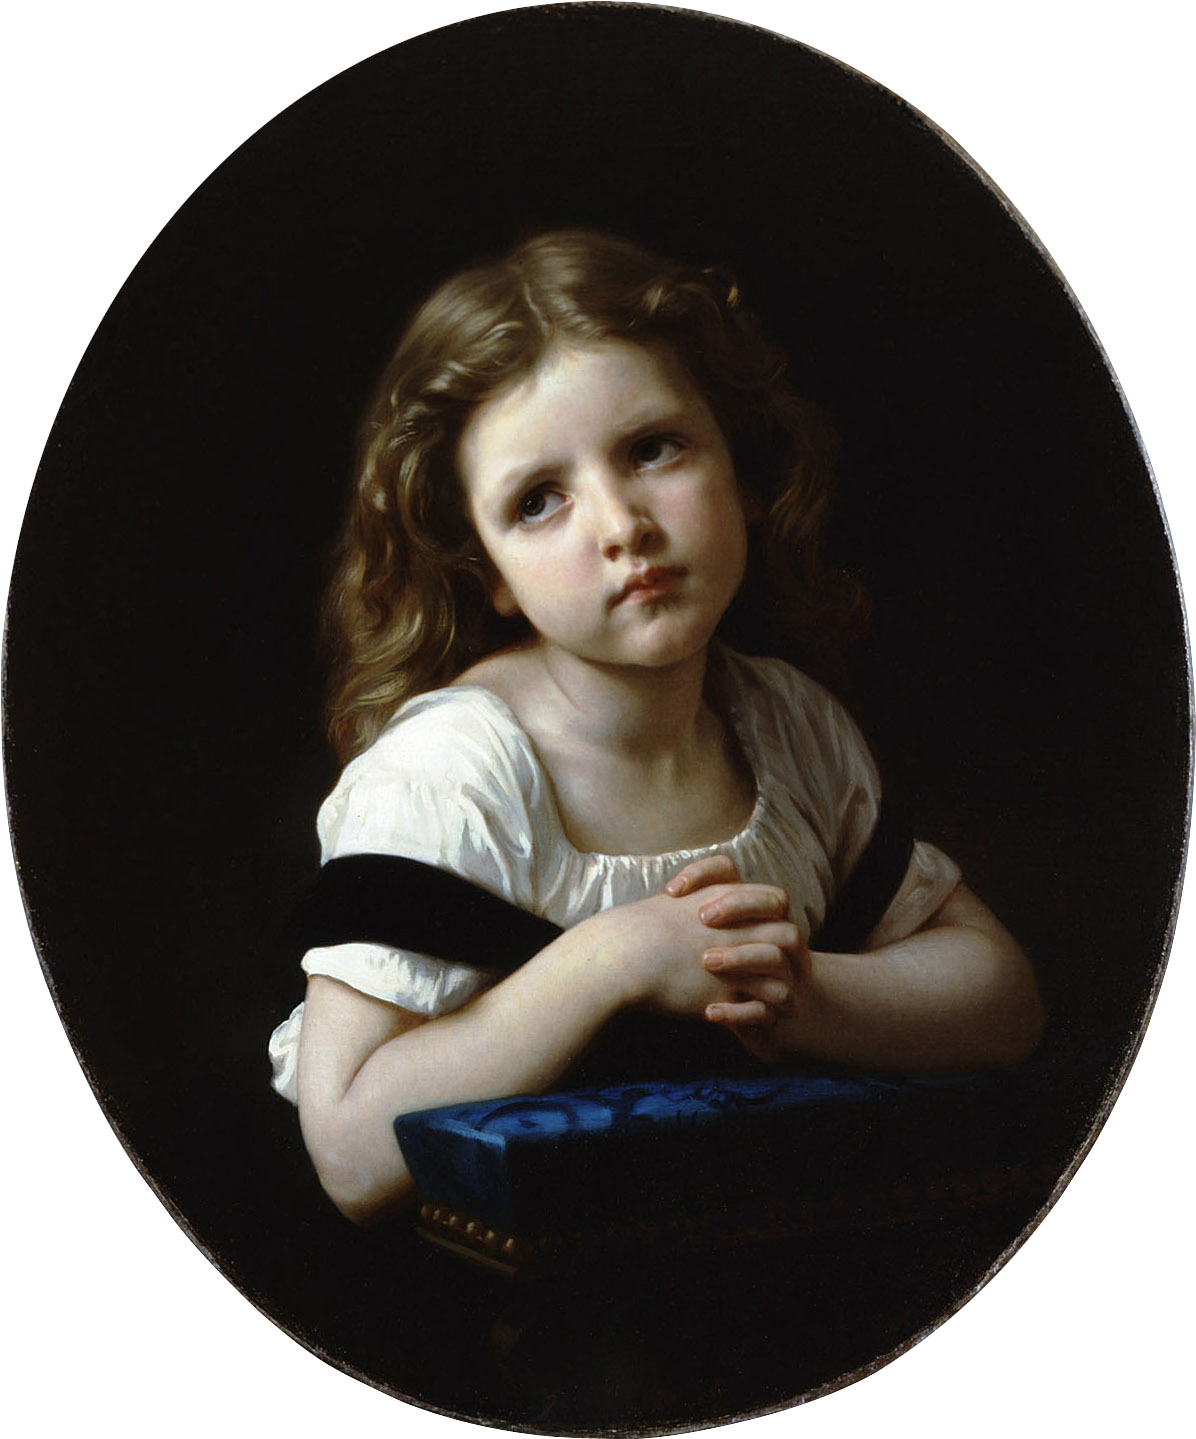 The Prayer by William-Adolphe Bouguereau